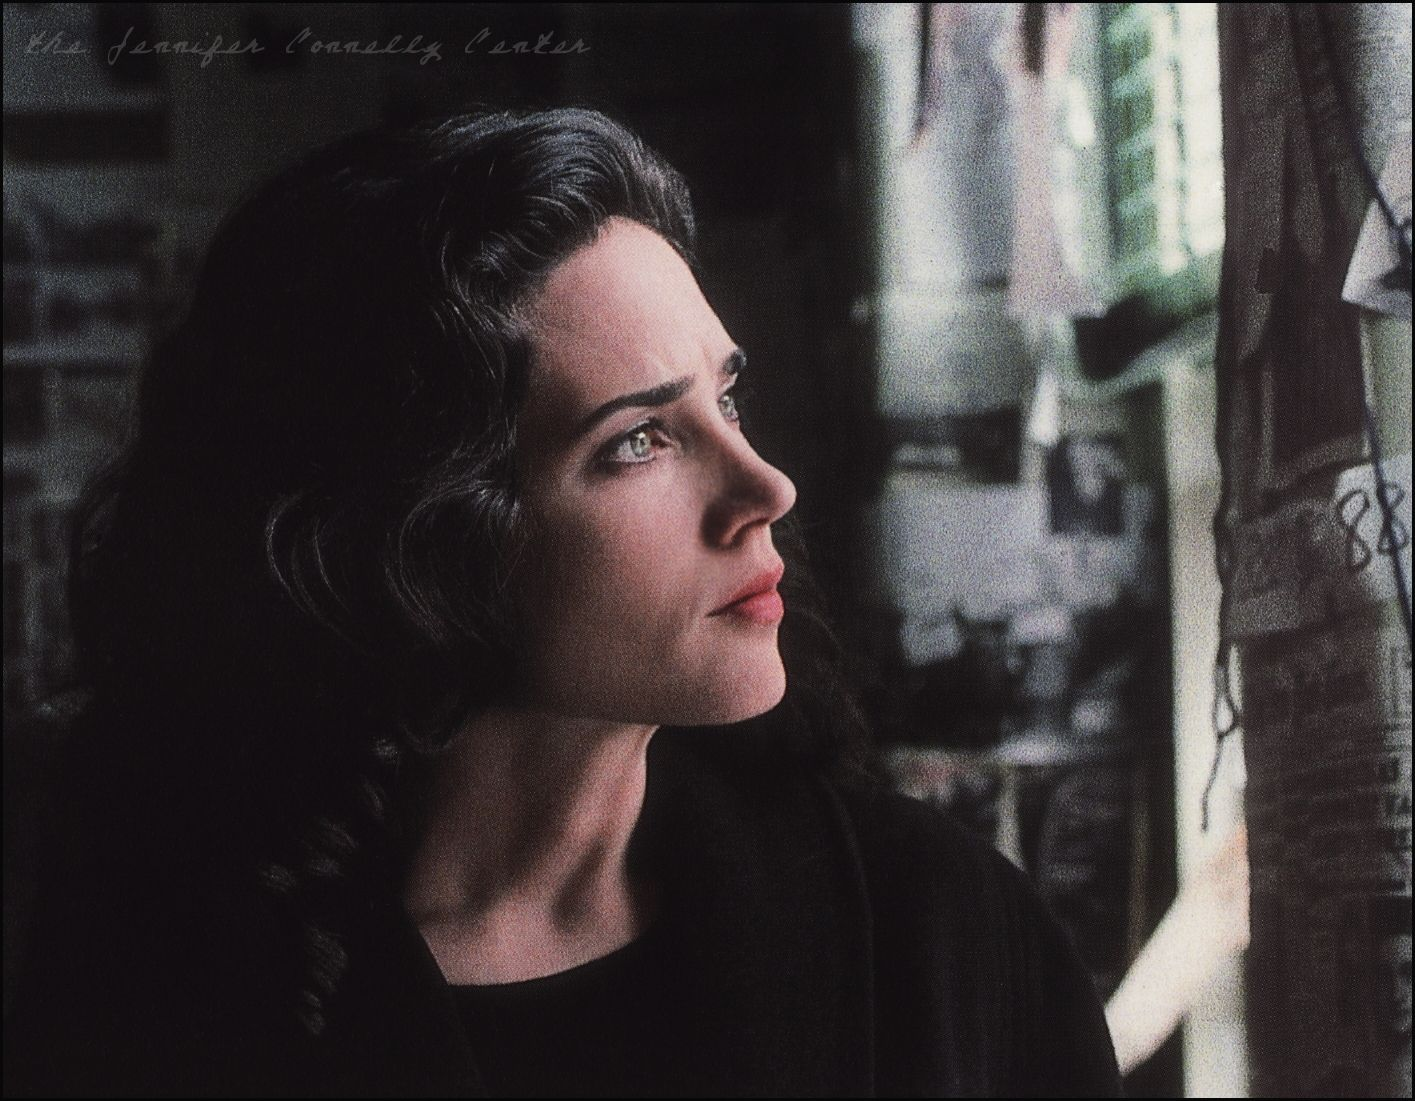 Jennifer Connelly in A Beautiful Mind | Jennifer Connelly ...